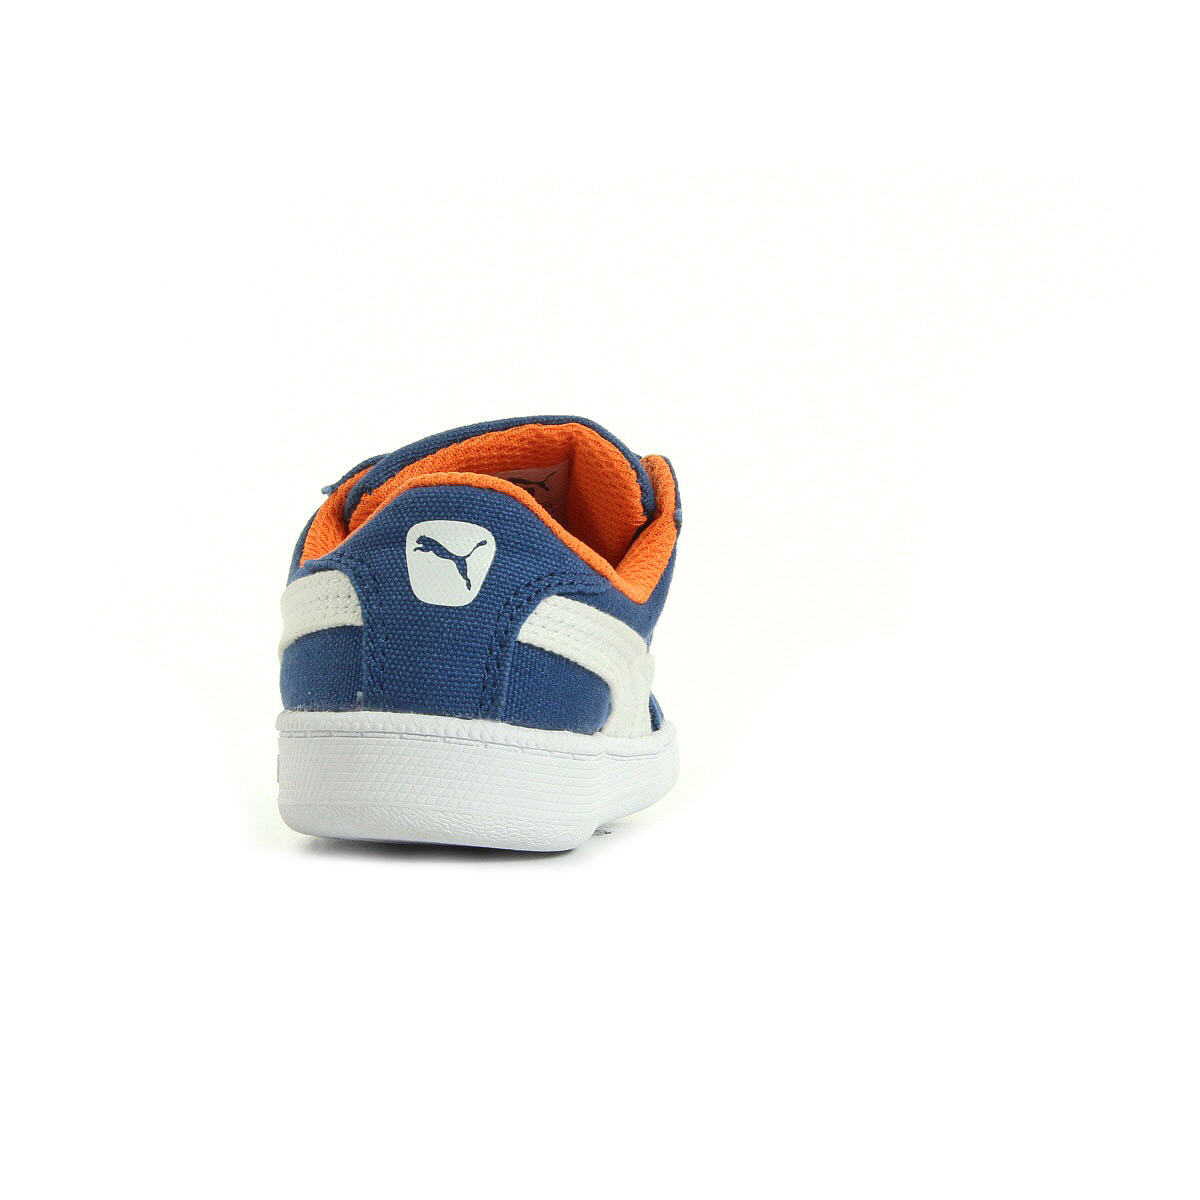 puma smash fun cv kids 36016103  baskets mode gar u00e7on